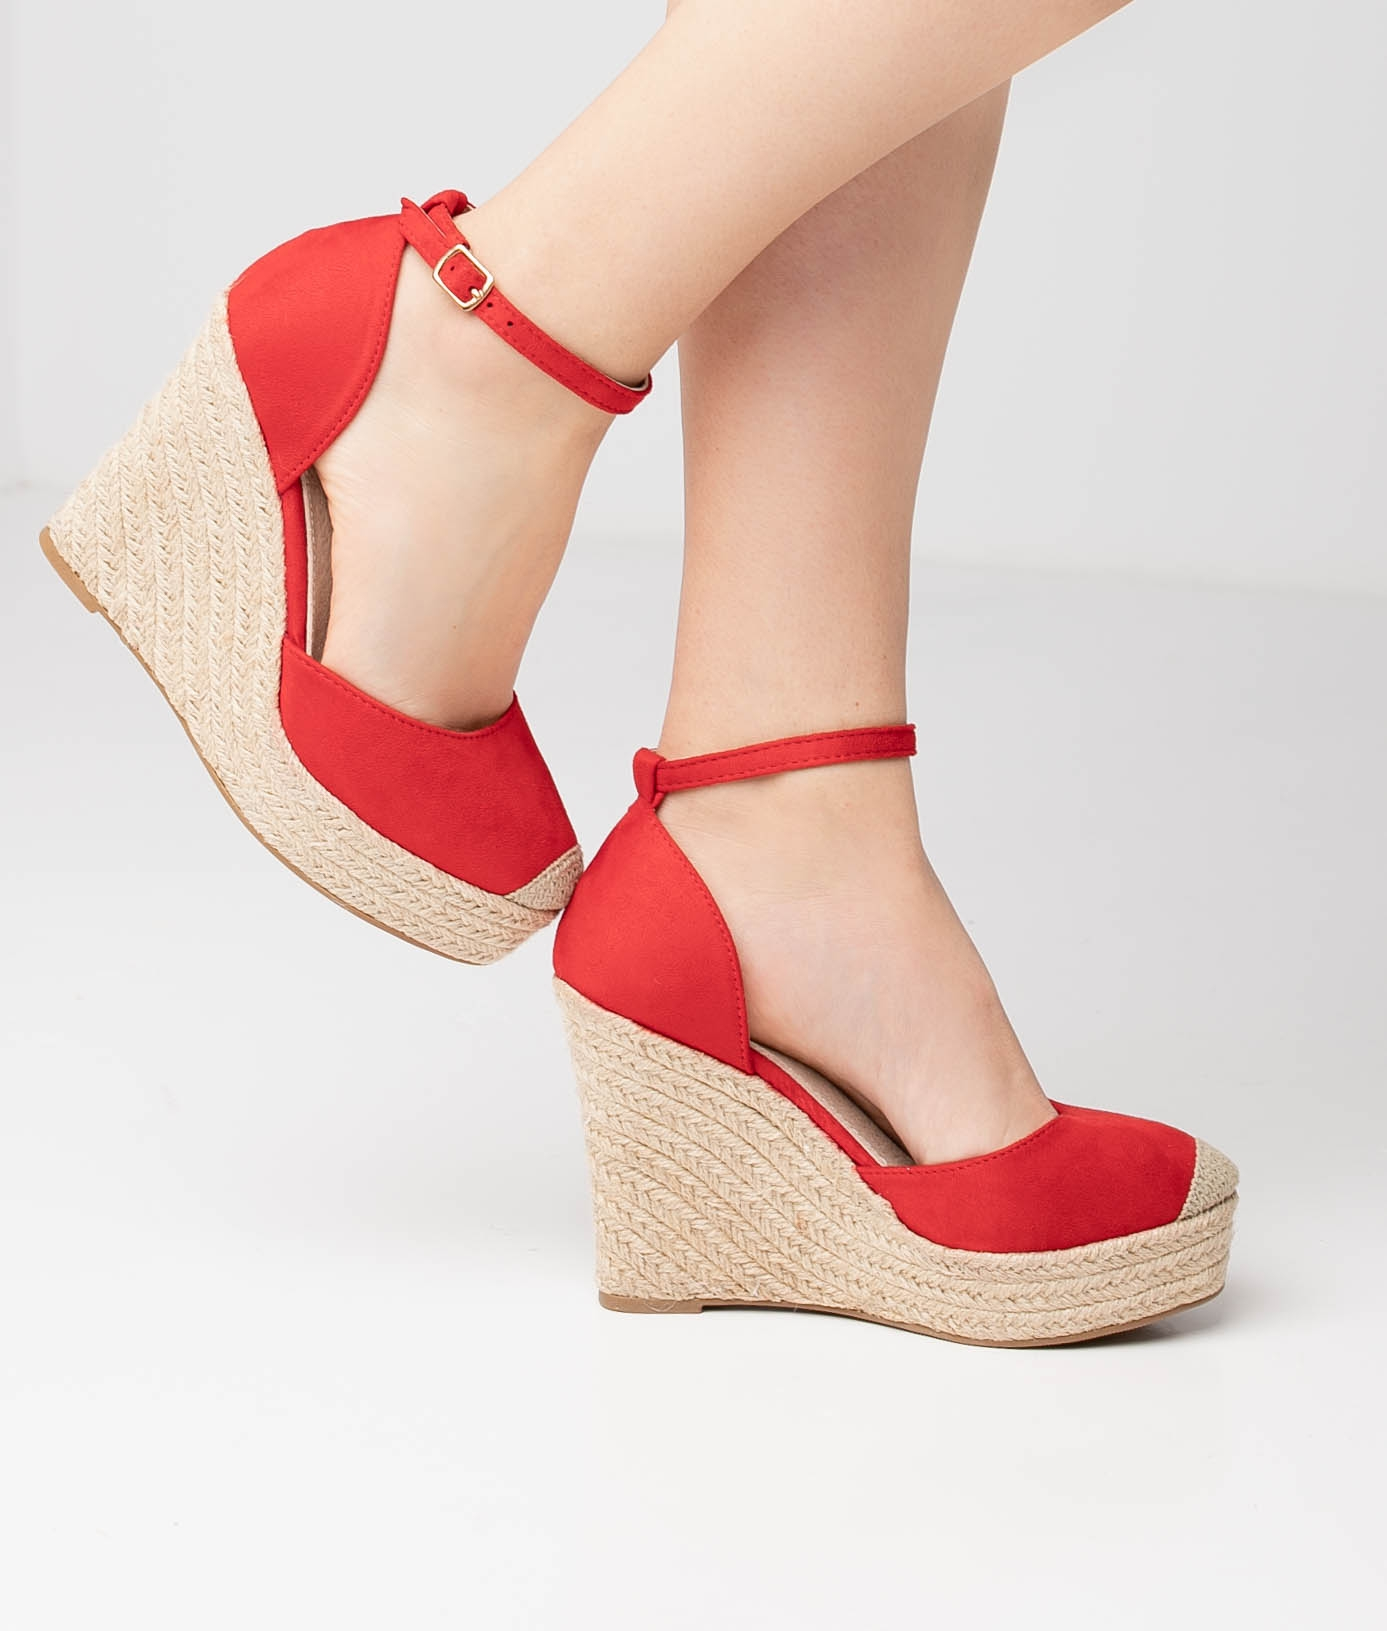 AVADI WEDGE HEEL - RED